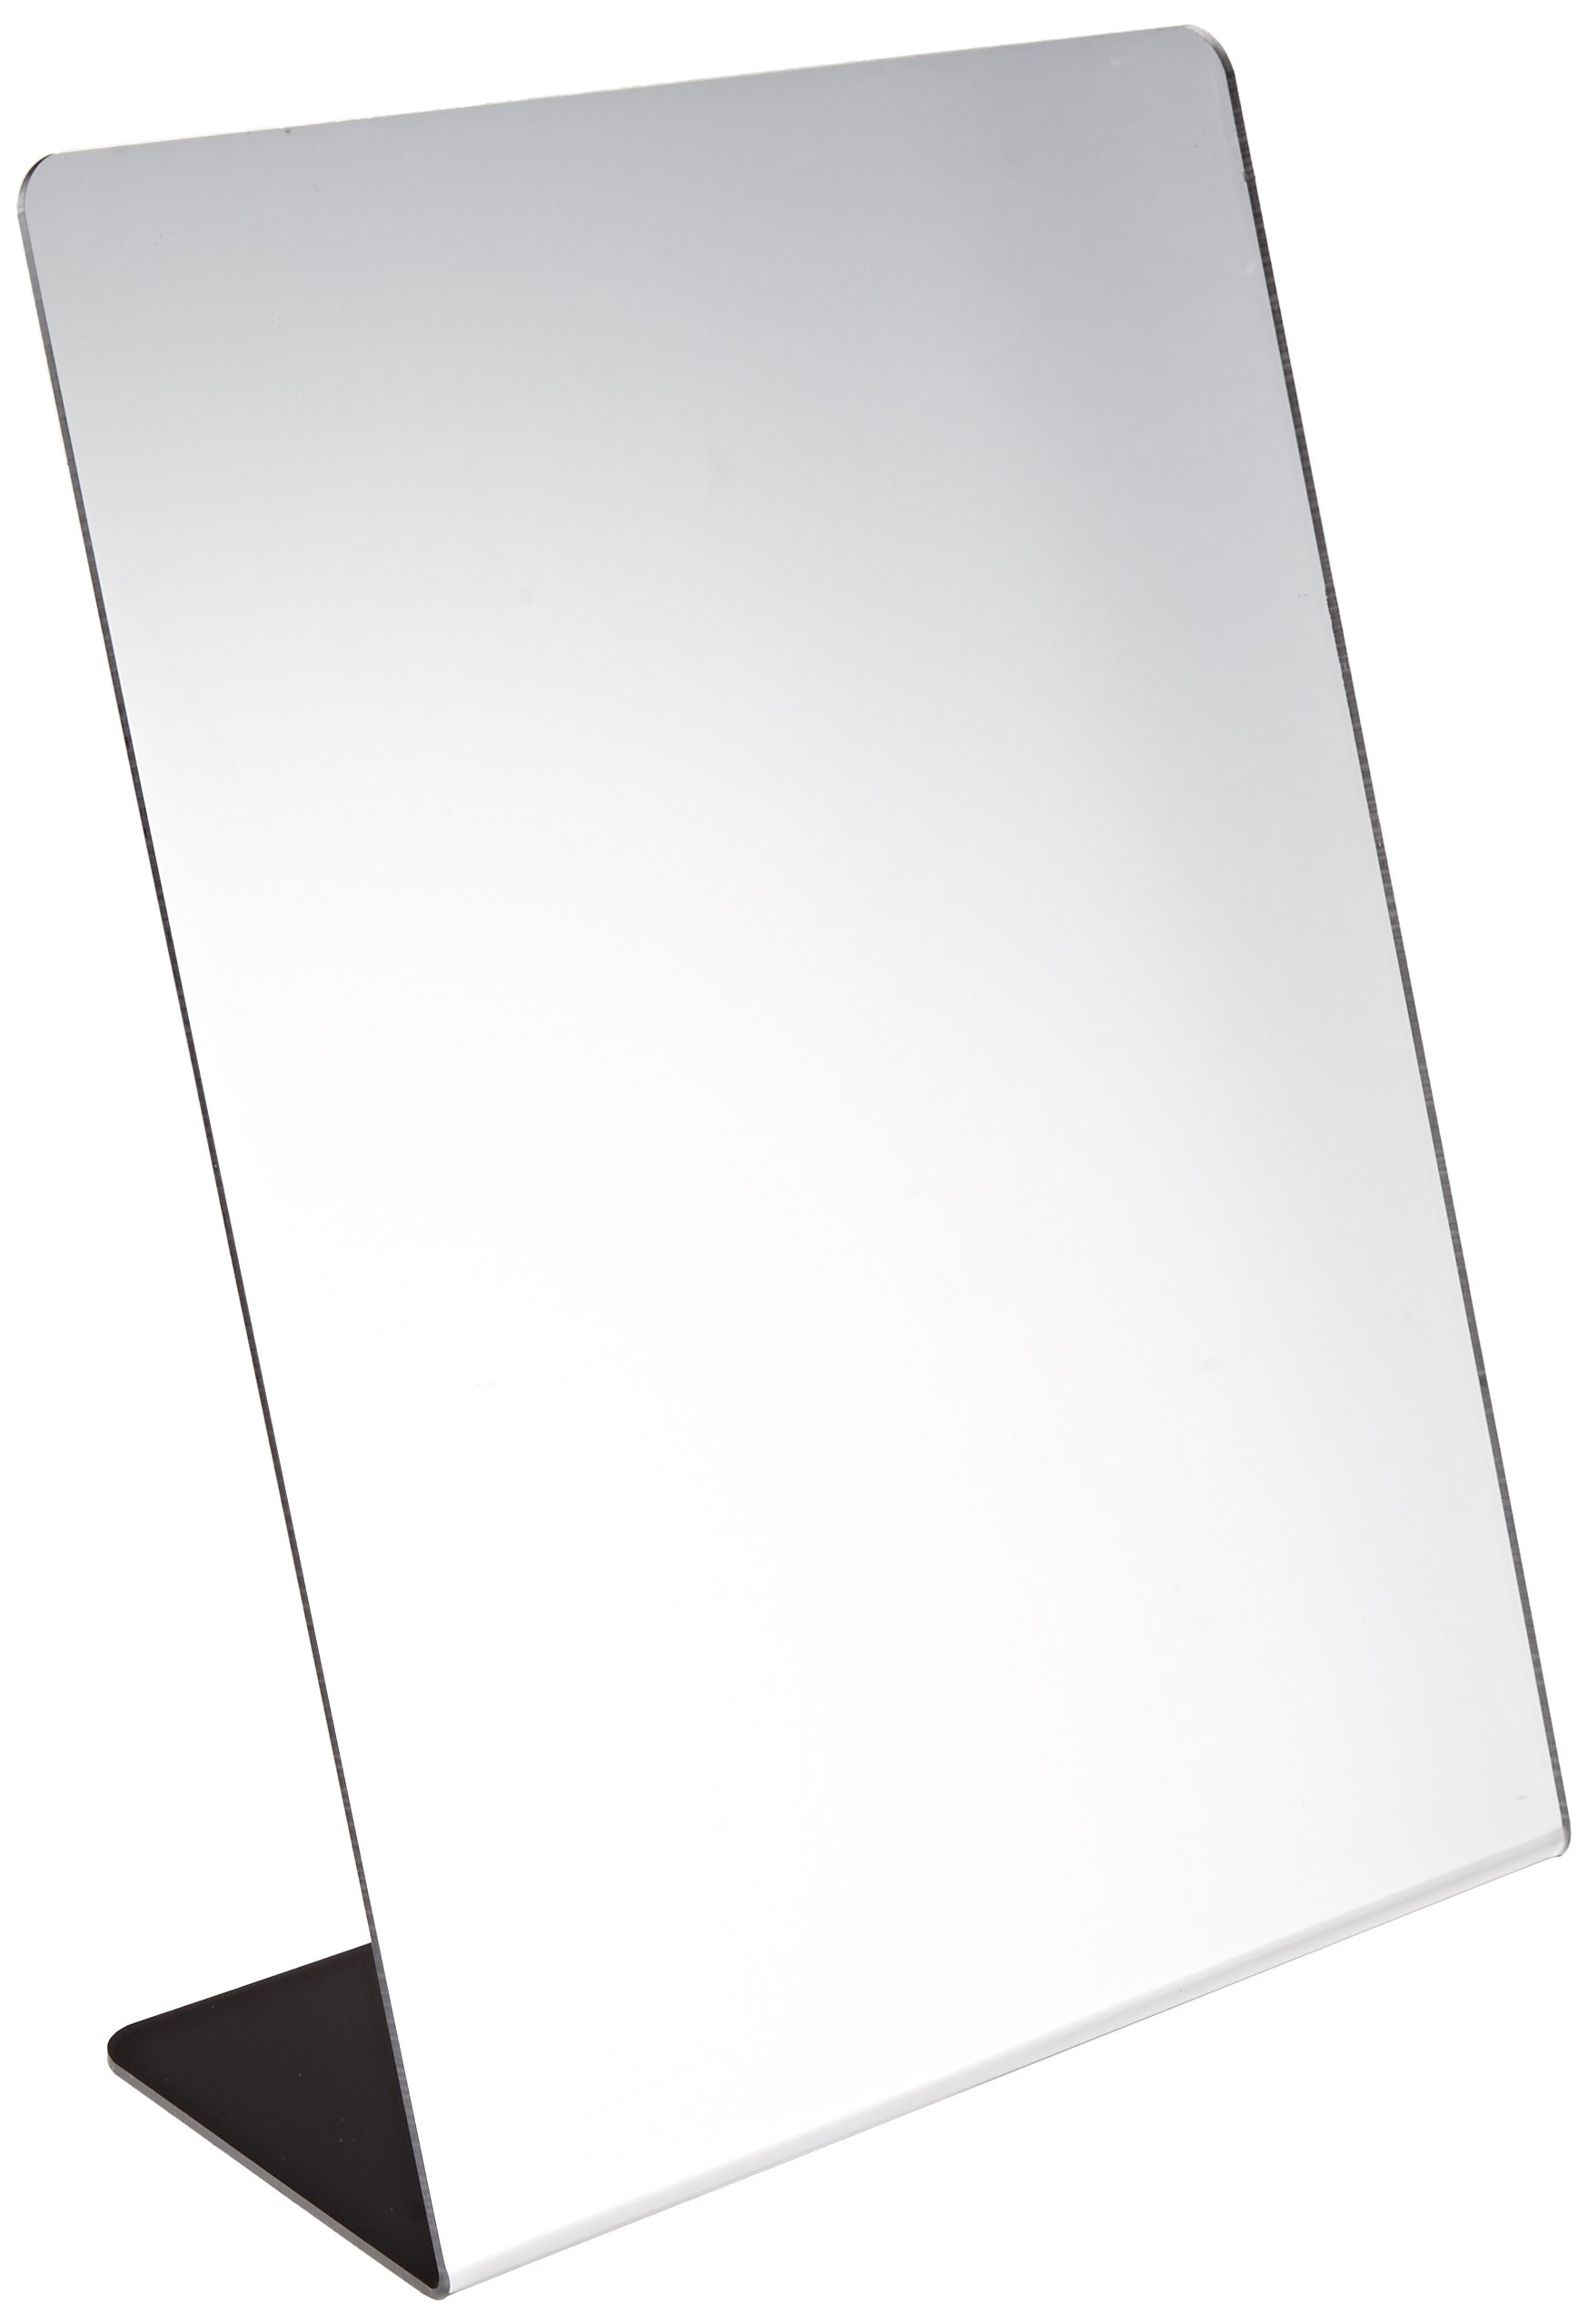 Sax Free-Standing and Single-Sided Self-Portrait Mirror - 8 1/2 x 11 inches by Sax